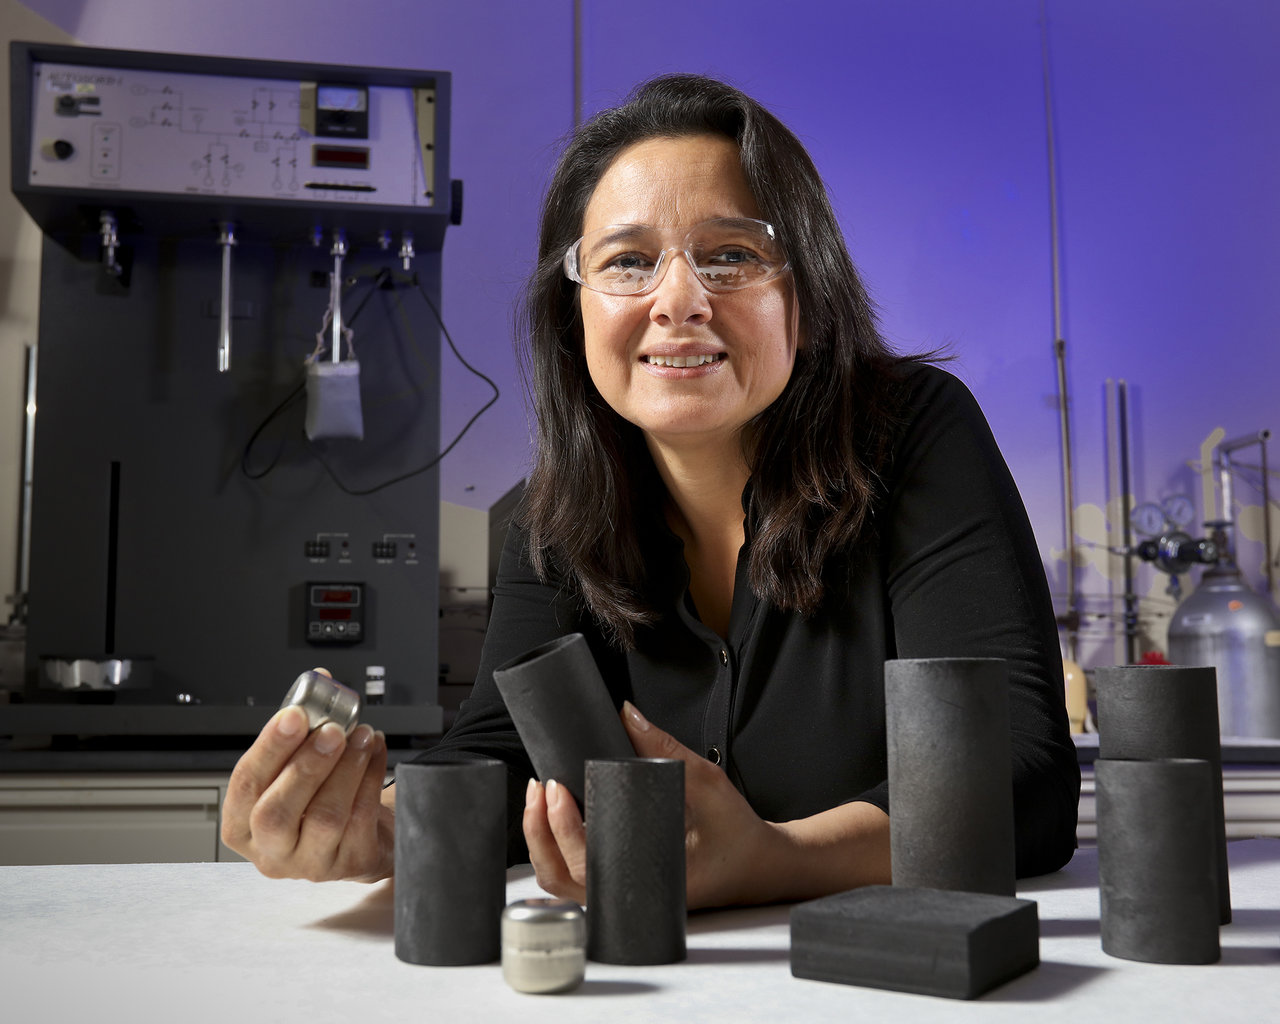 Color image of Nidia Gallego in a lab.